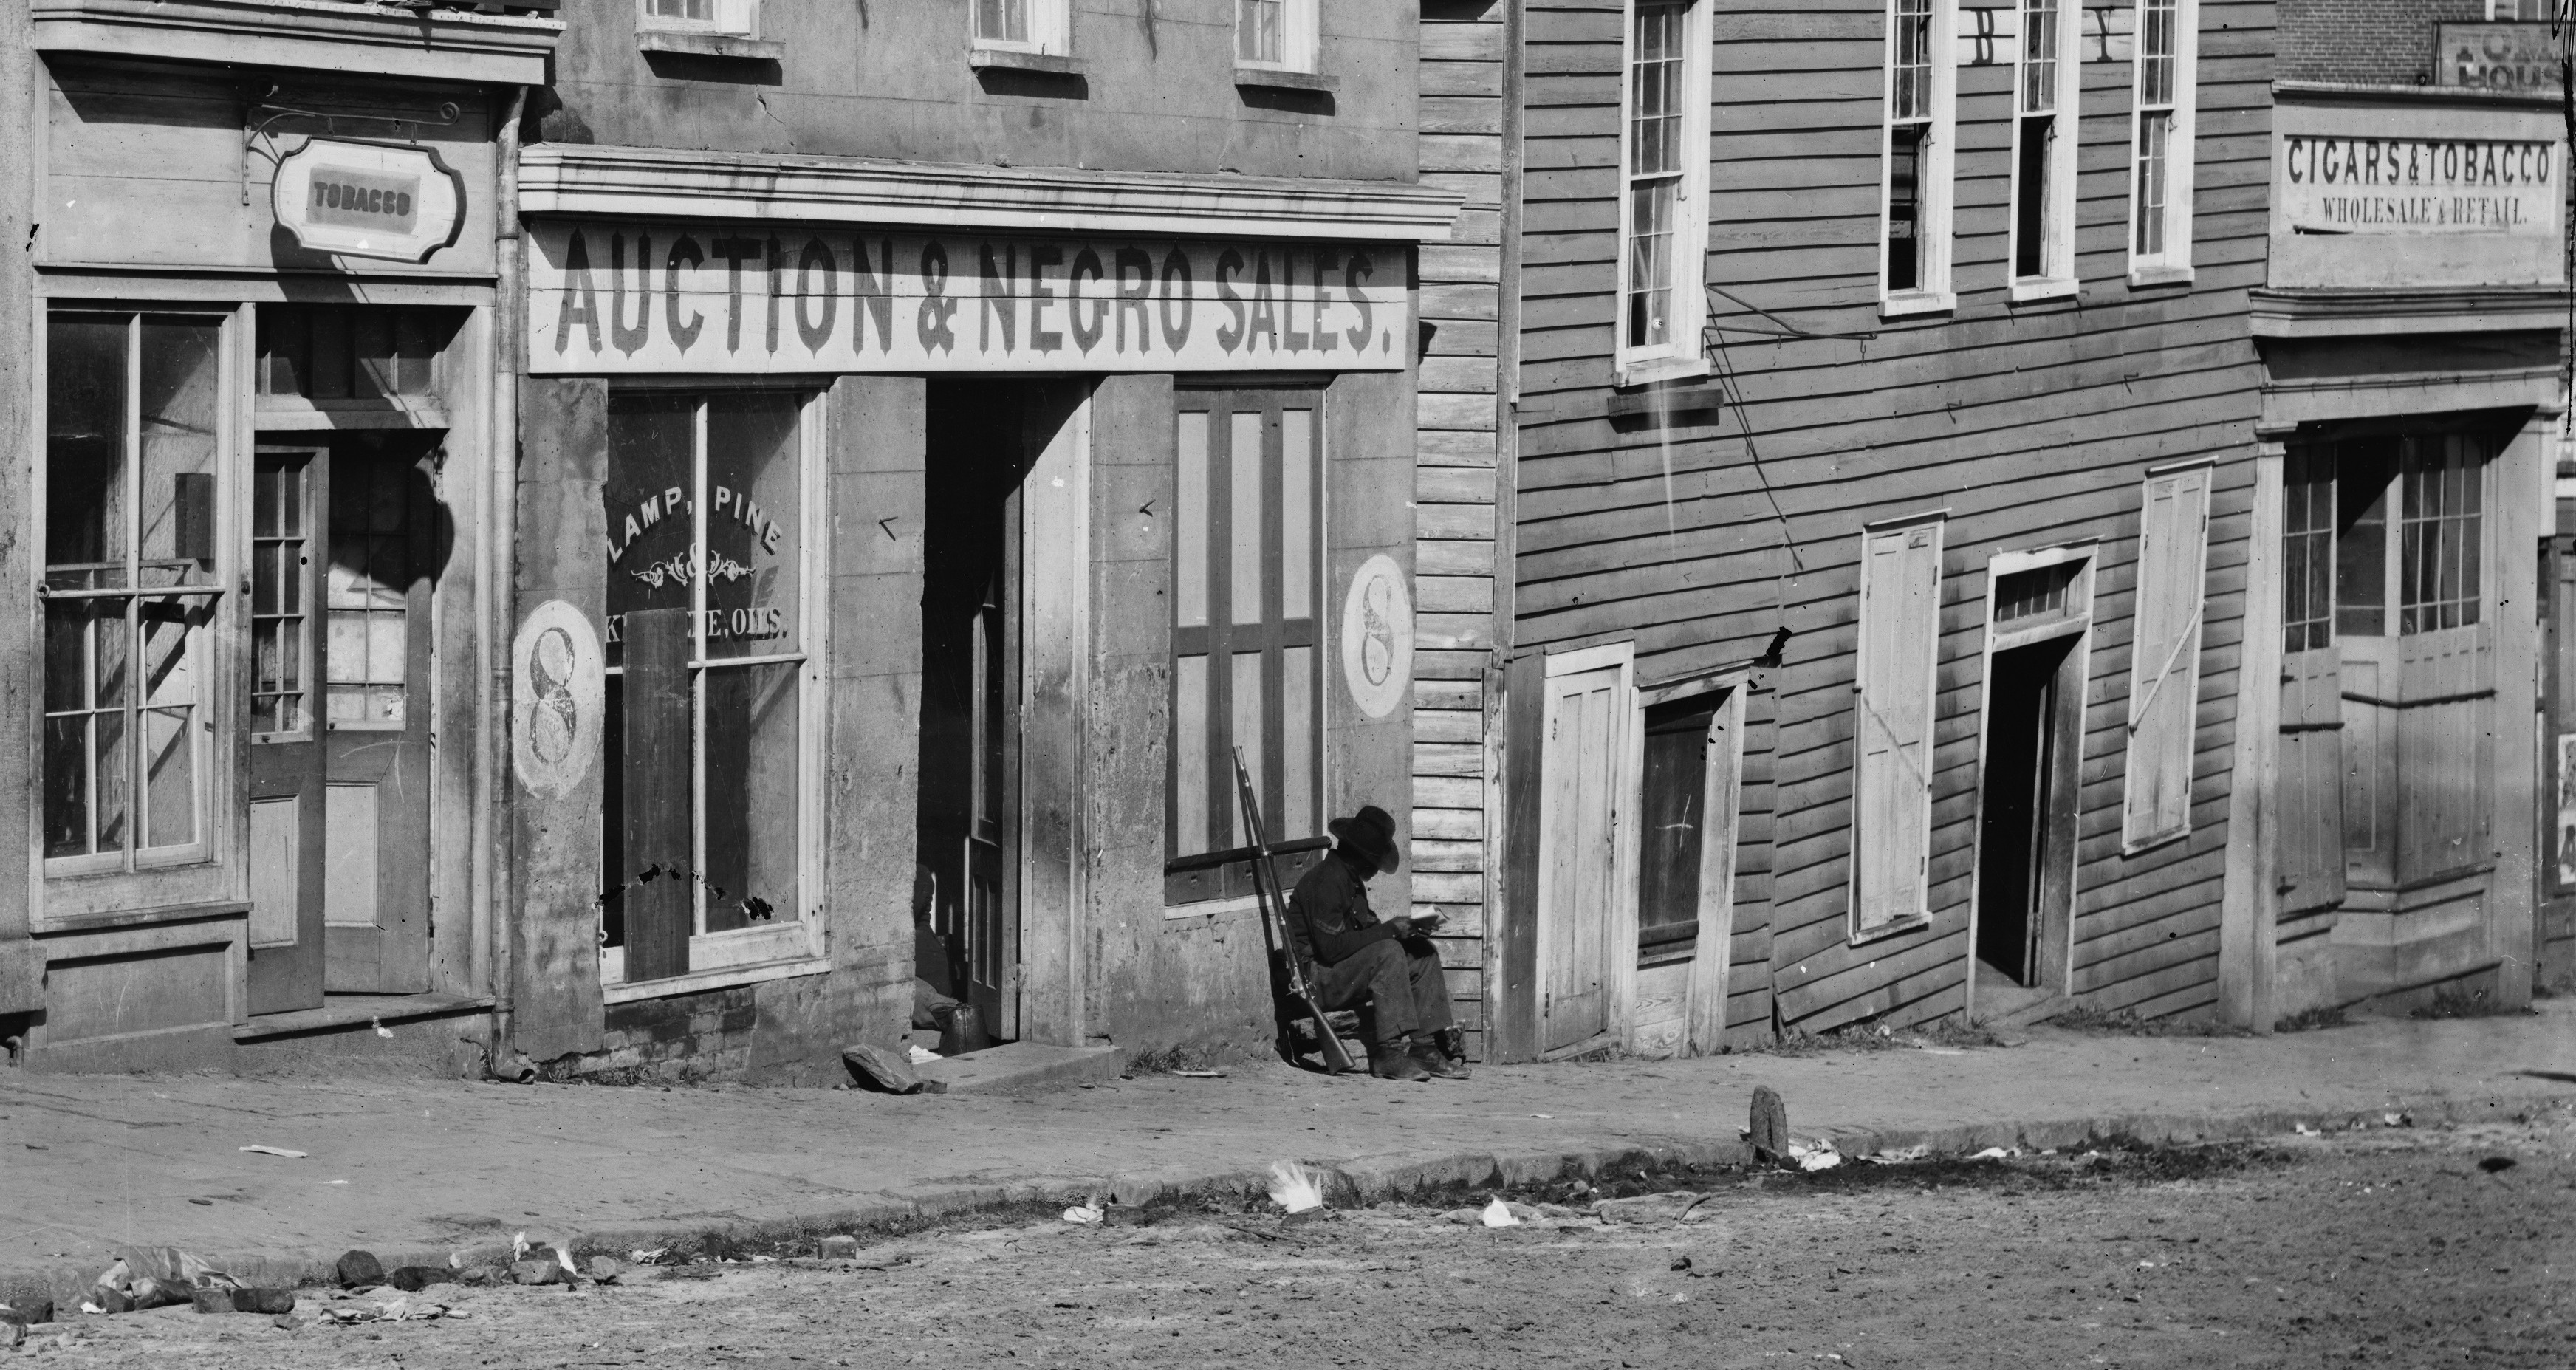 """Old storefronts in Atlanta circa 1864 including one with a sign that reads """"Auction & Negro Sales."""""""